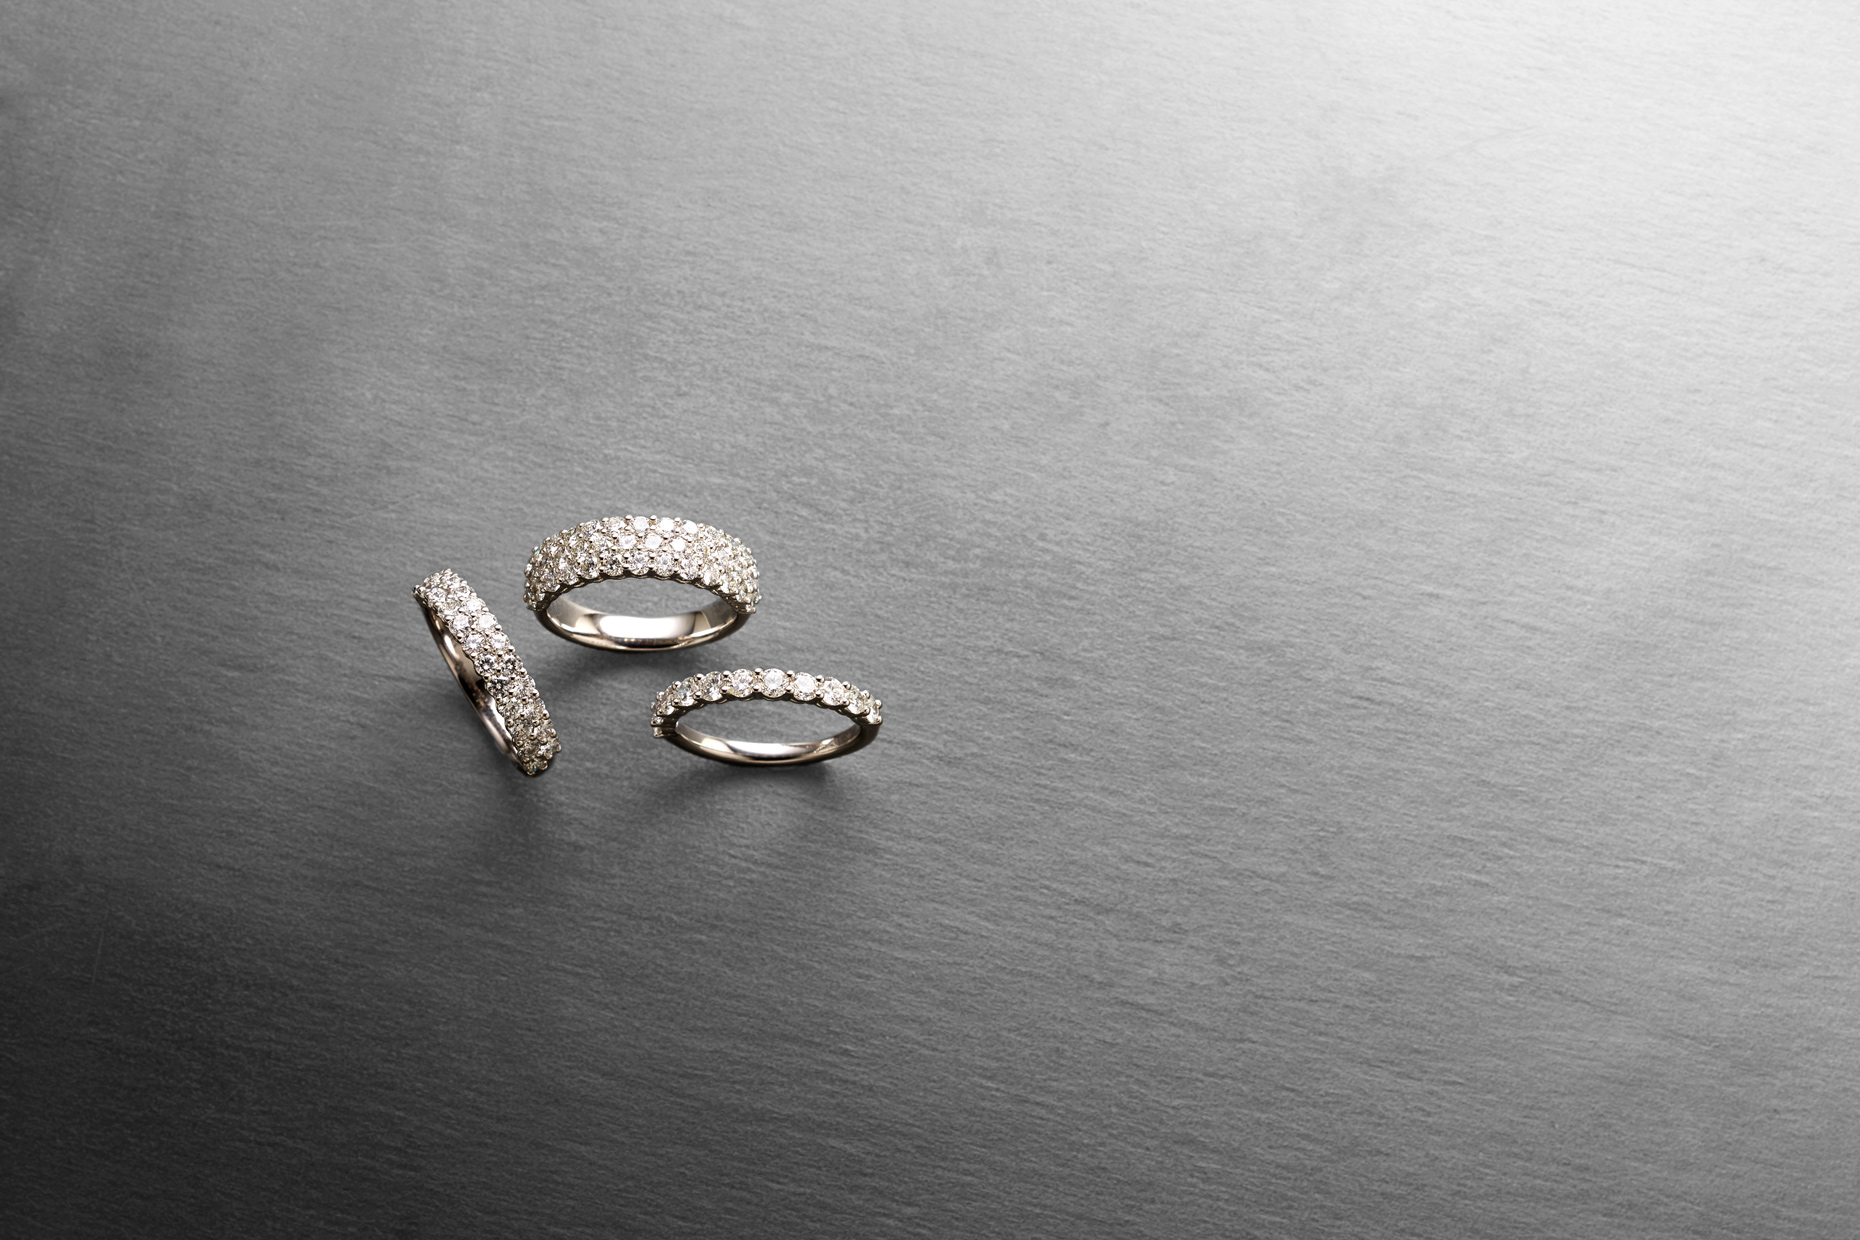 Product photography Jewelry Derek Israelsen Diamond Bands